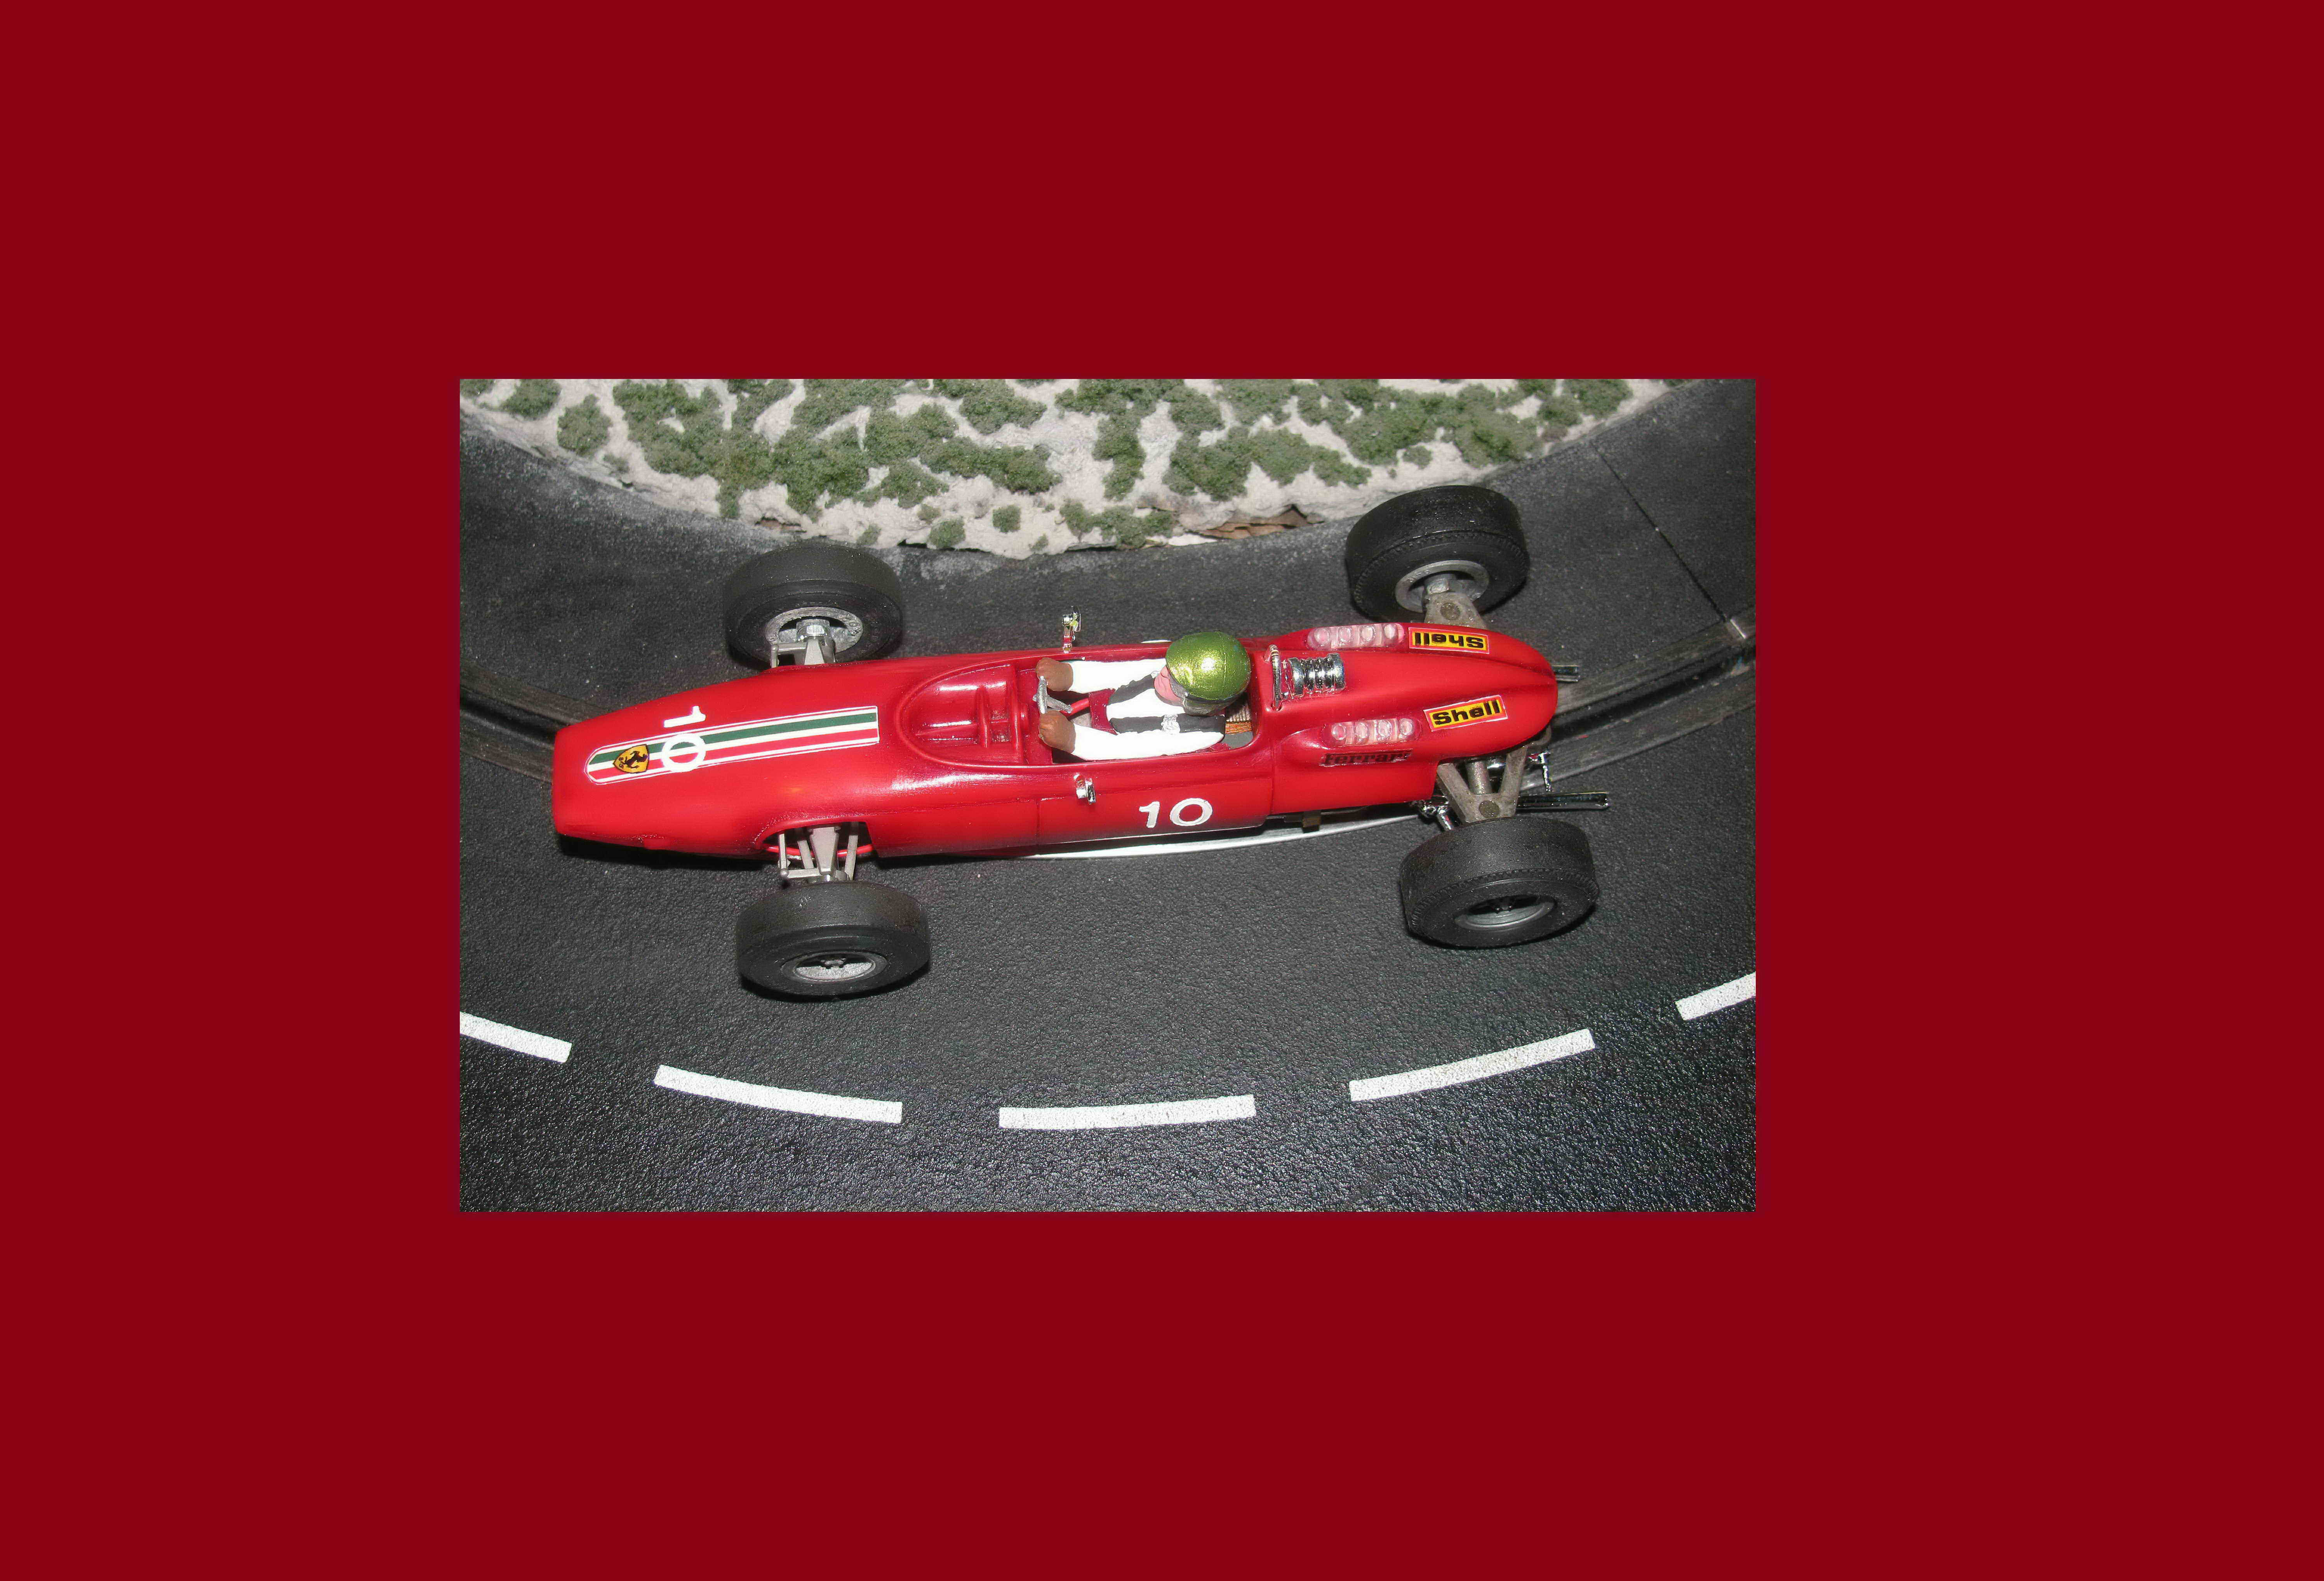 *SOLD* Vintage COX 1/24 Ferrari F-1 slot car #10